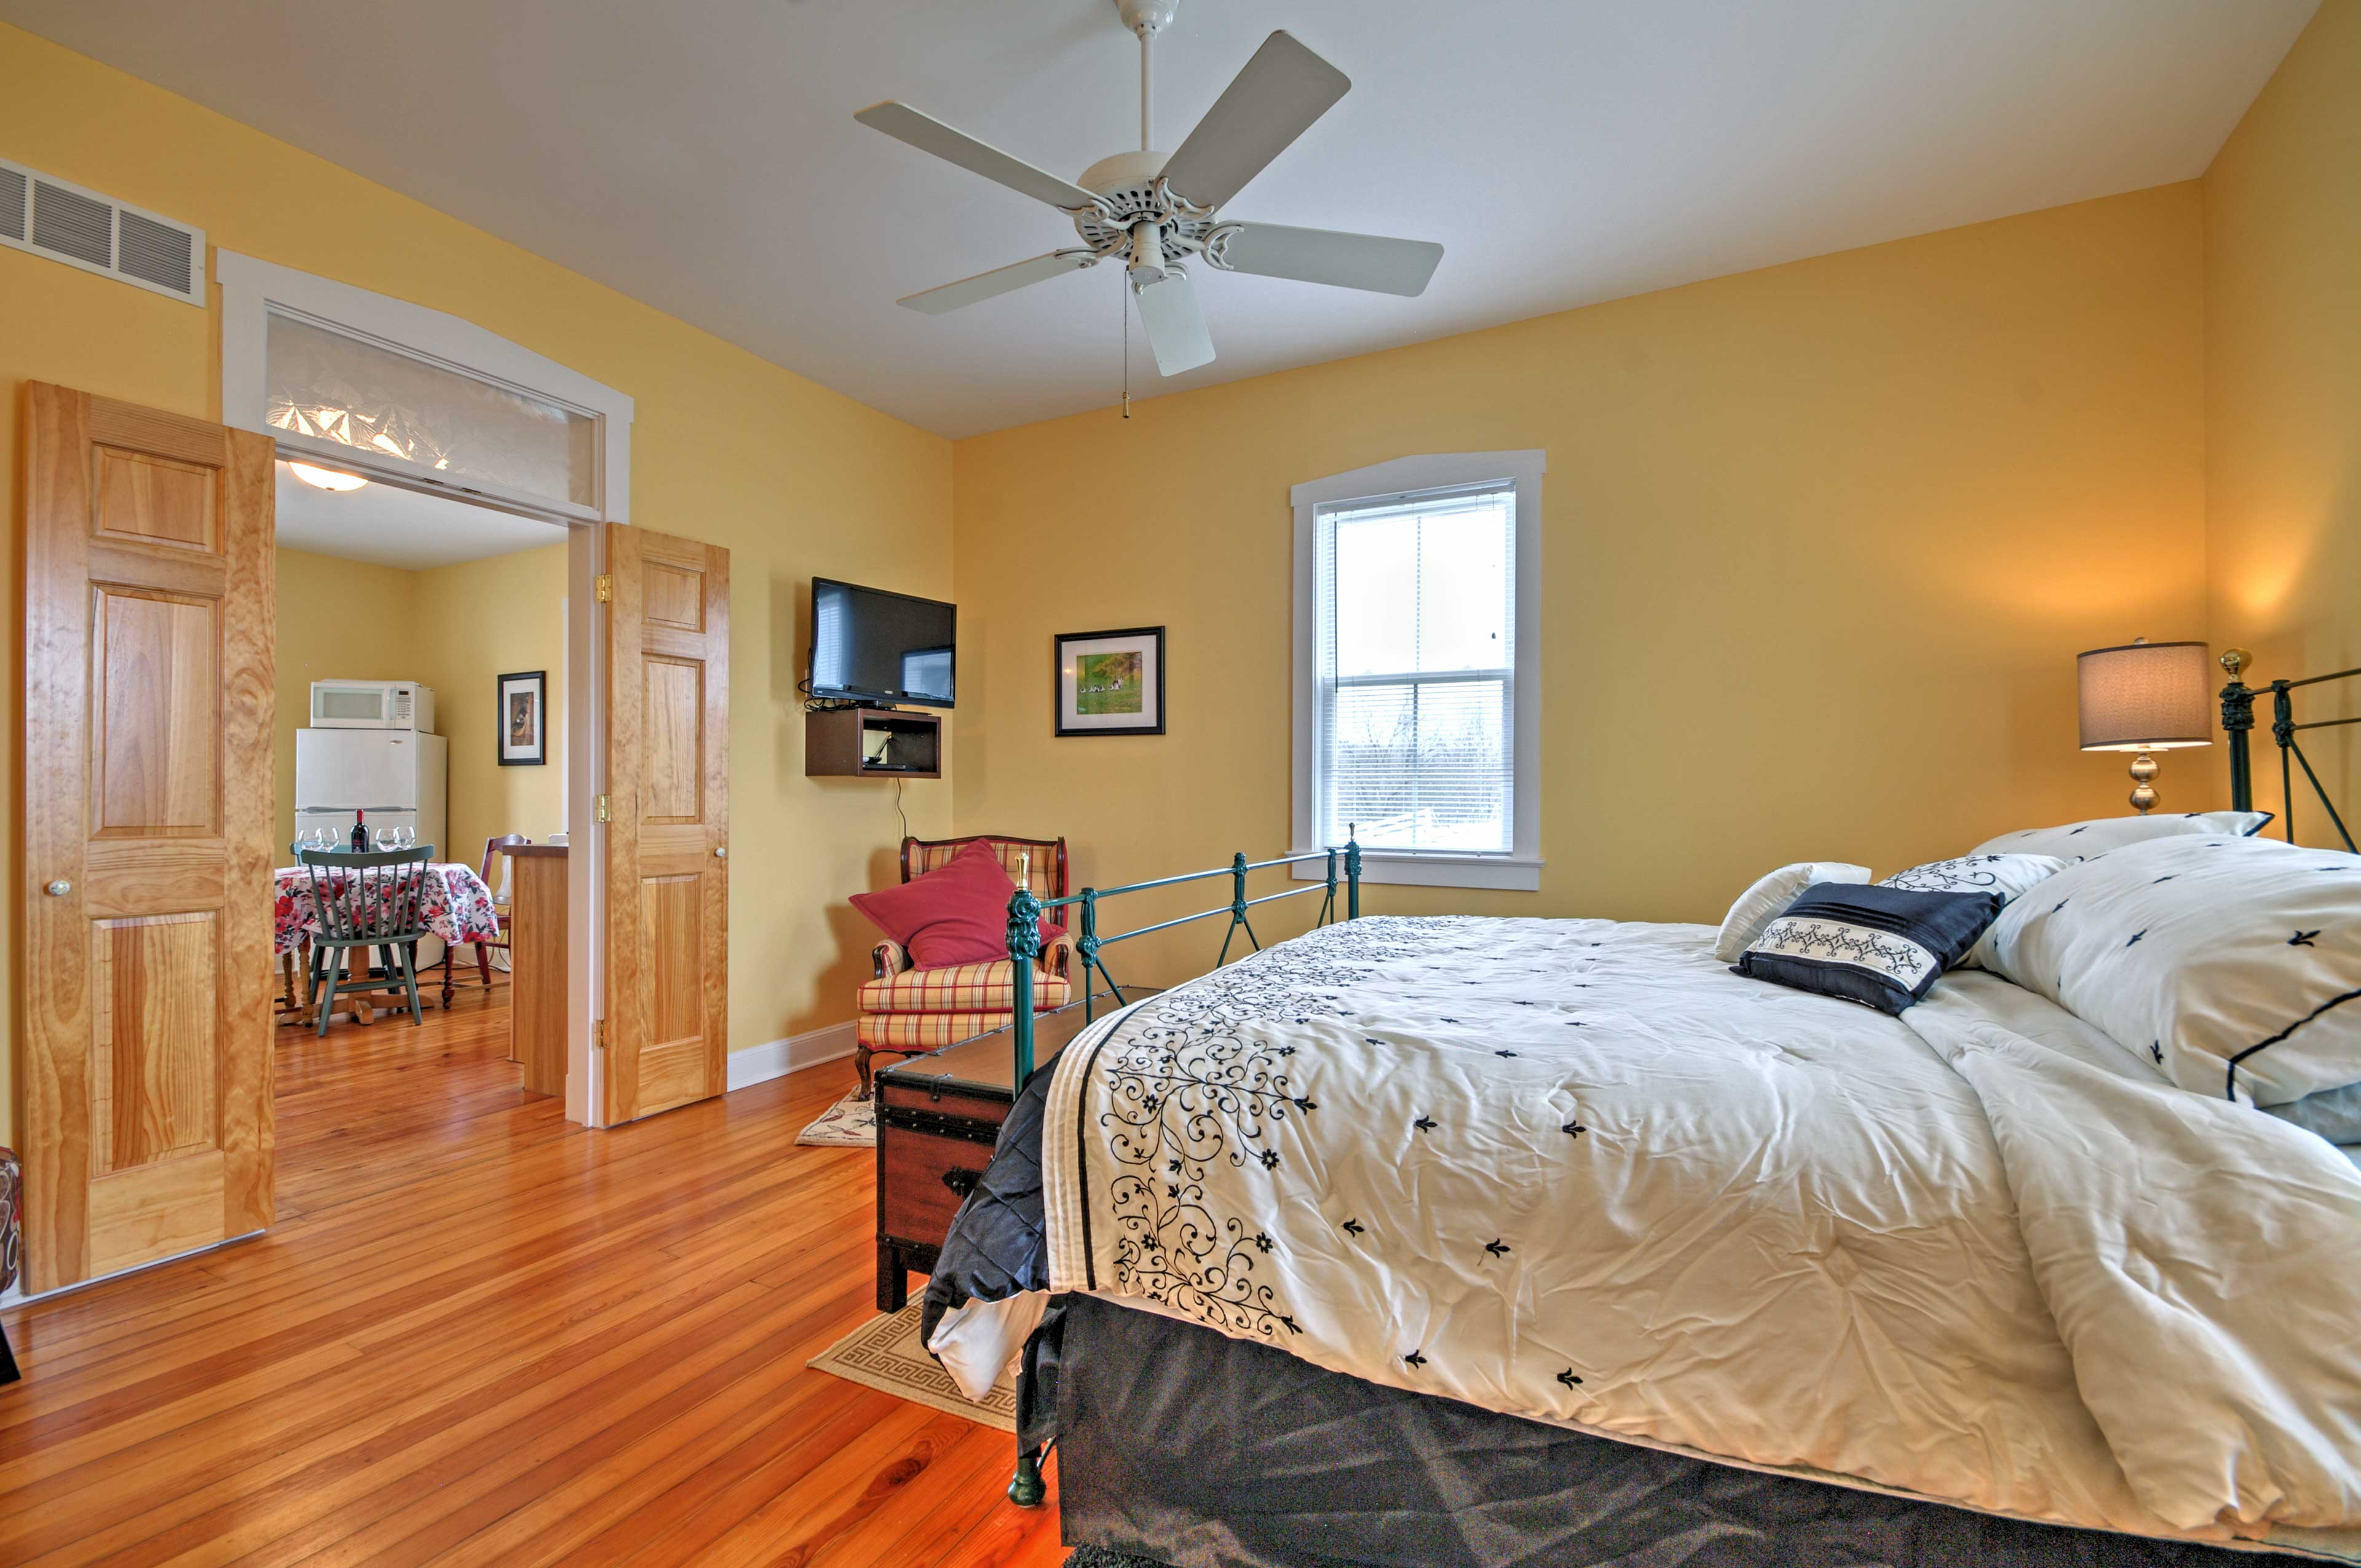 Escape the stresses of everyday life and stay at this vacation rental apartment.